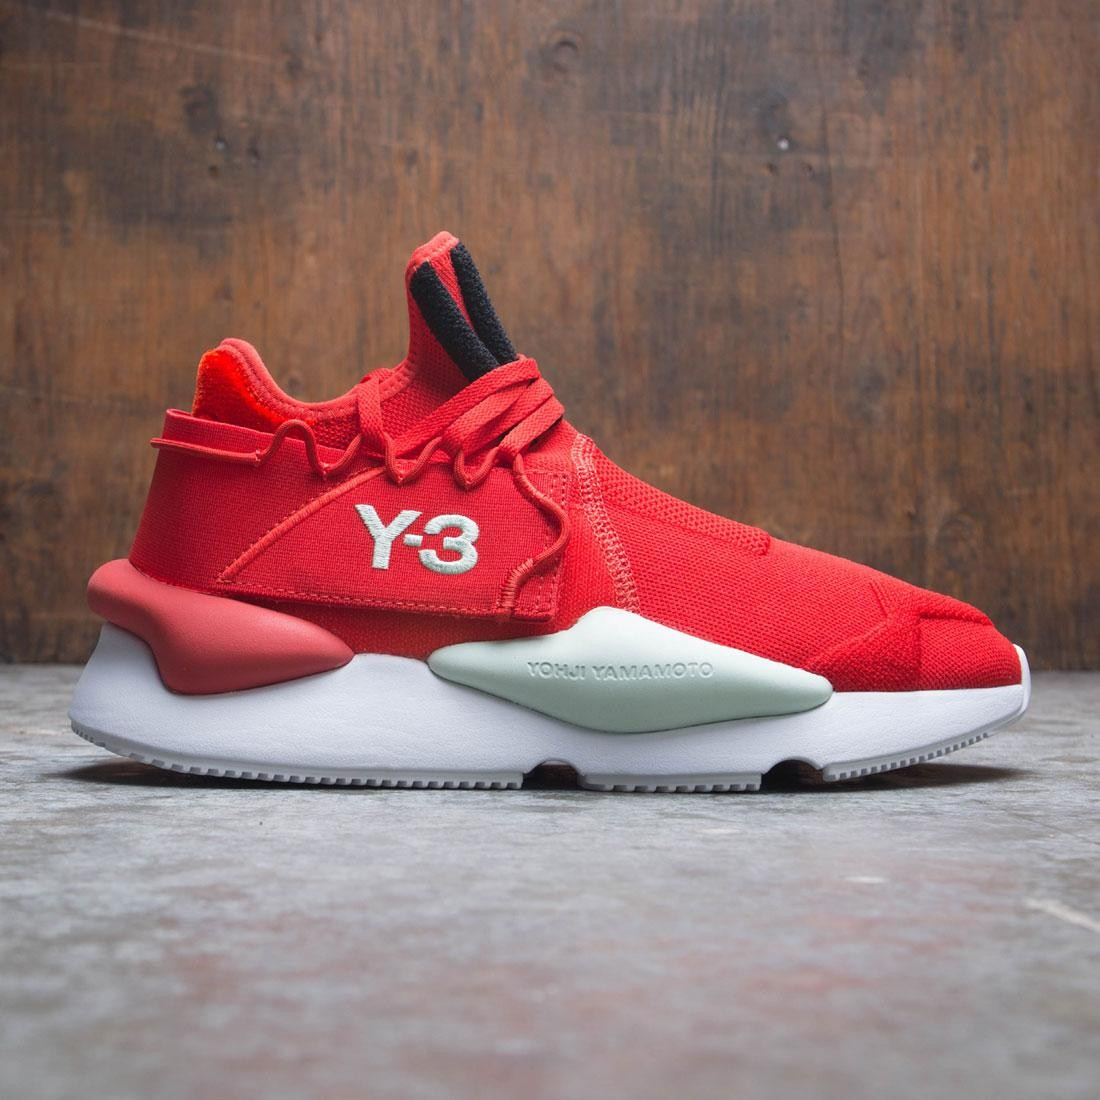 48d192d97ce5e Adidas Y-3 Men Kaiwa Knit red core black salty green